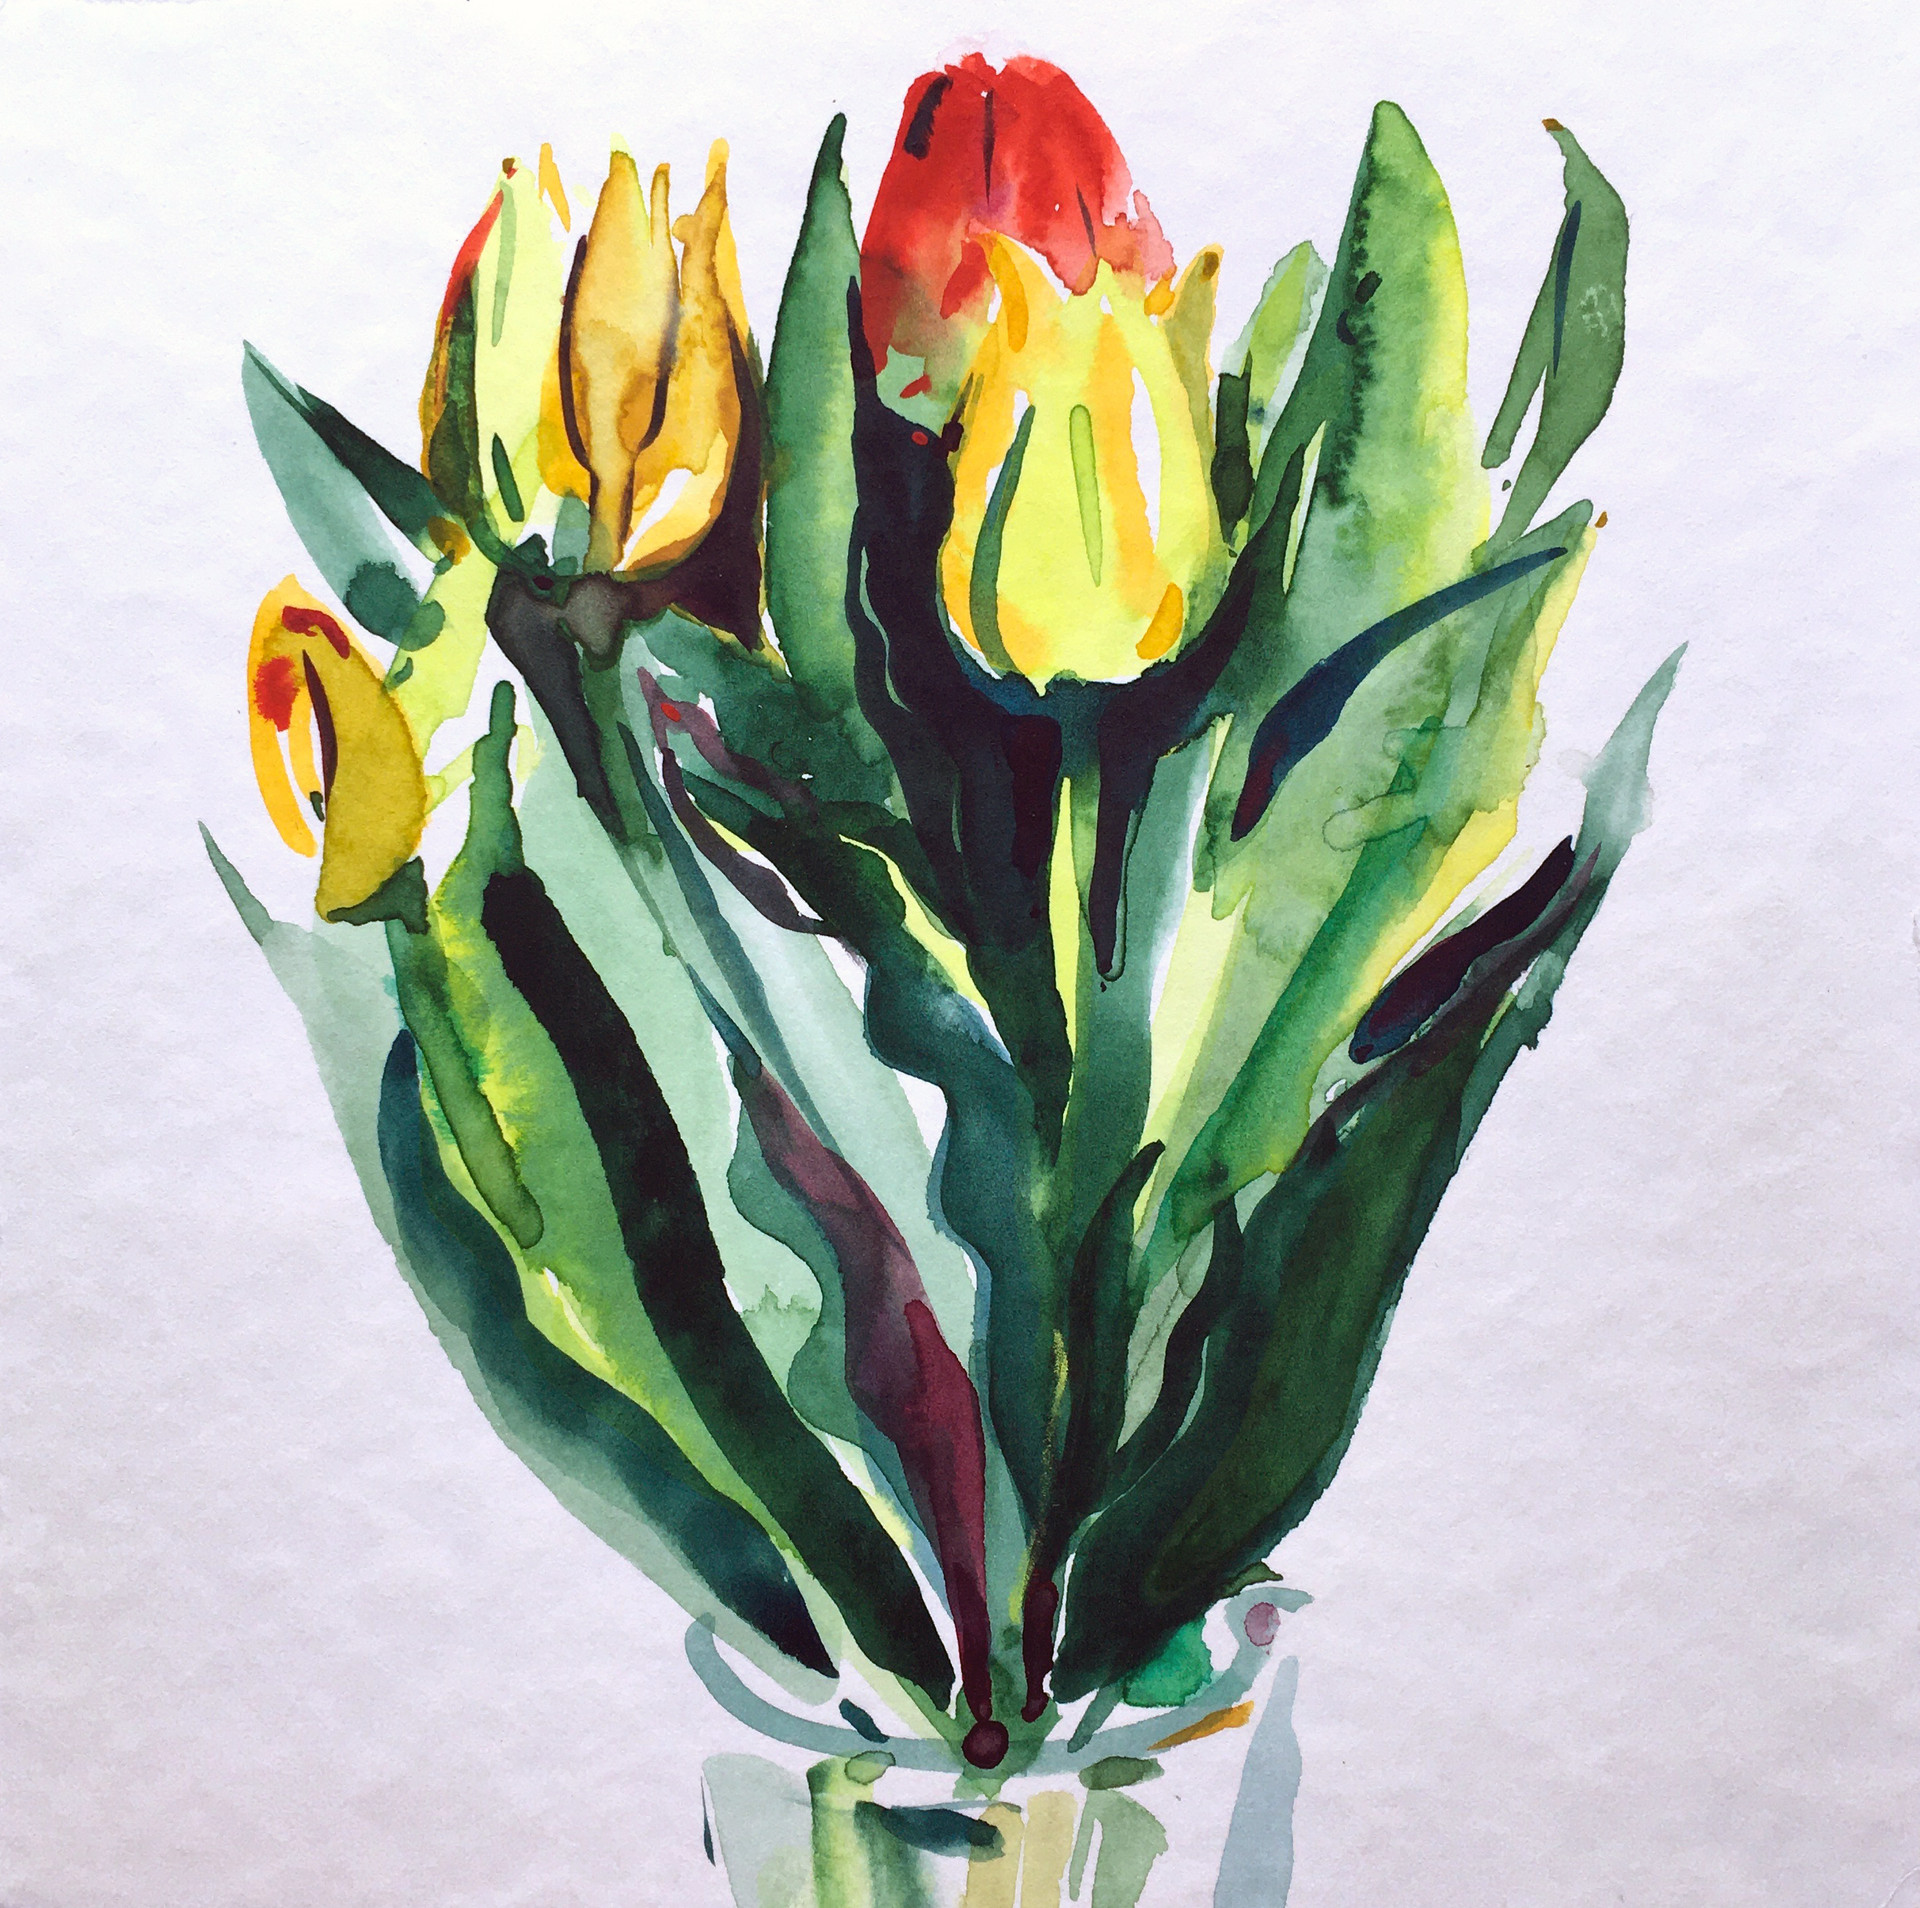 Tulips bunched